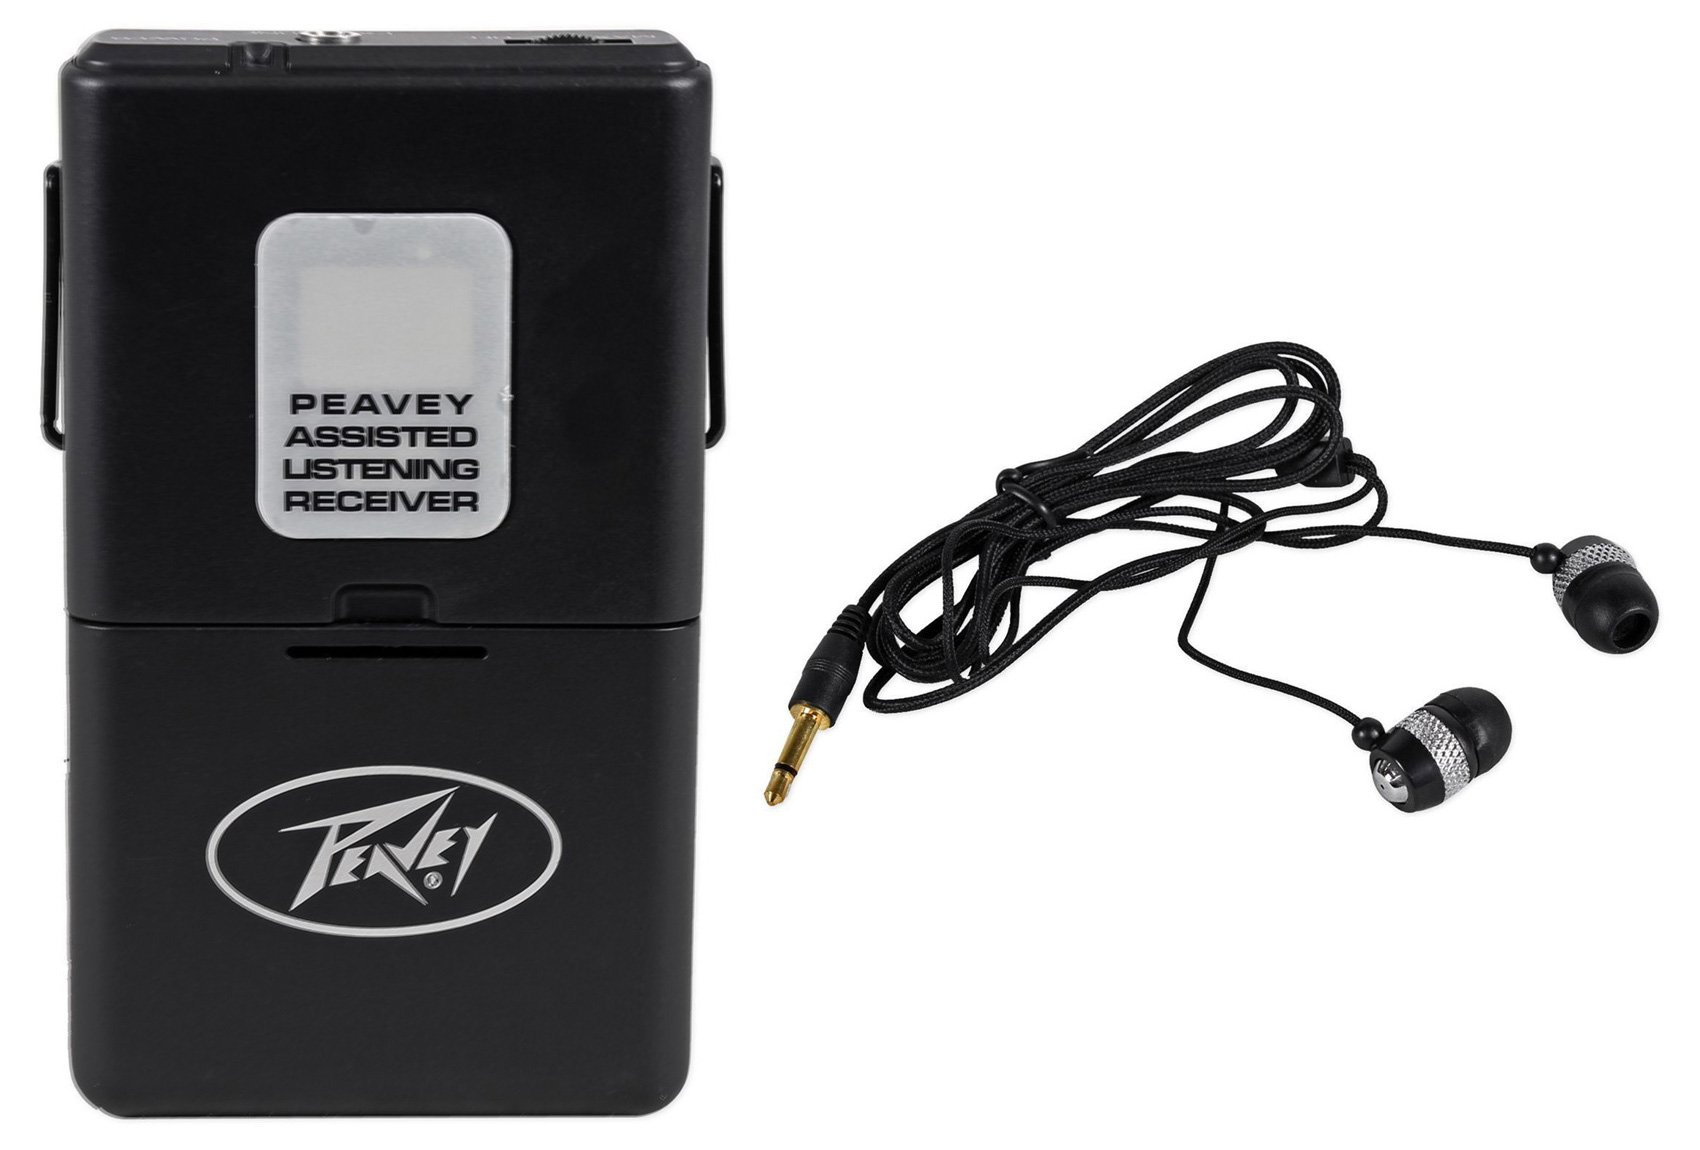 Peavey ALSR 75.9 Mhz Assisted Listening Receiver Body Pack ALSR75.9 + Earbuds